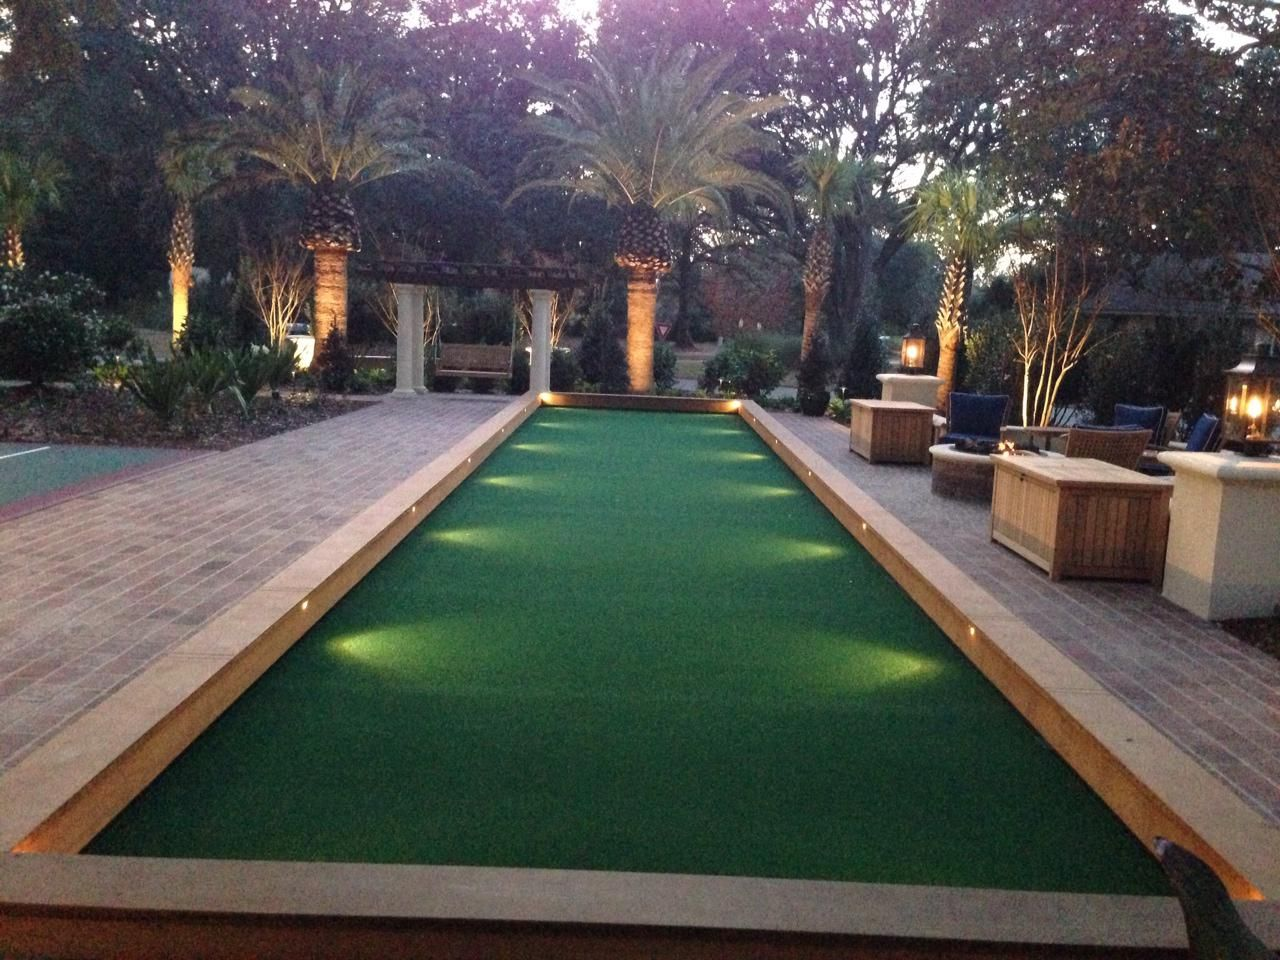 image result for build a bocce court in backyard backyard bocce